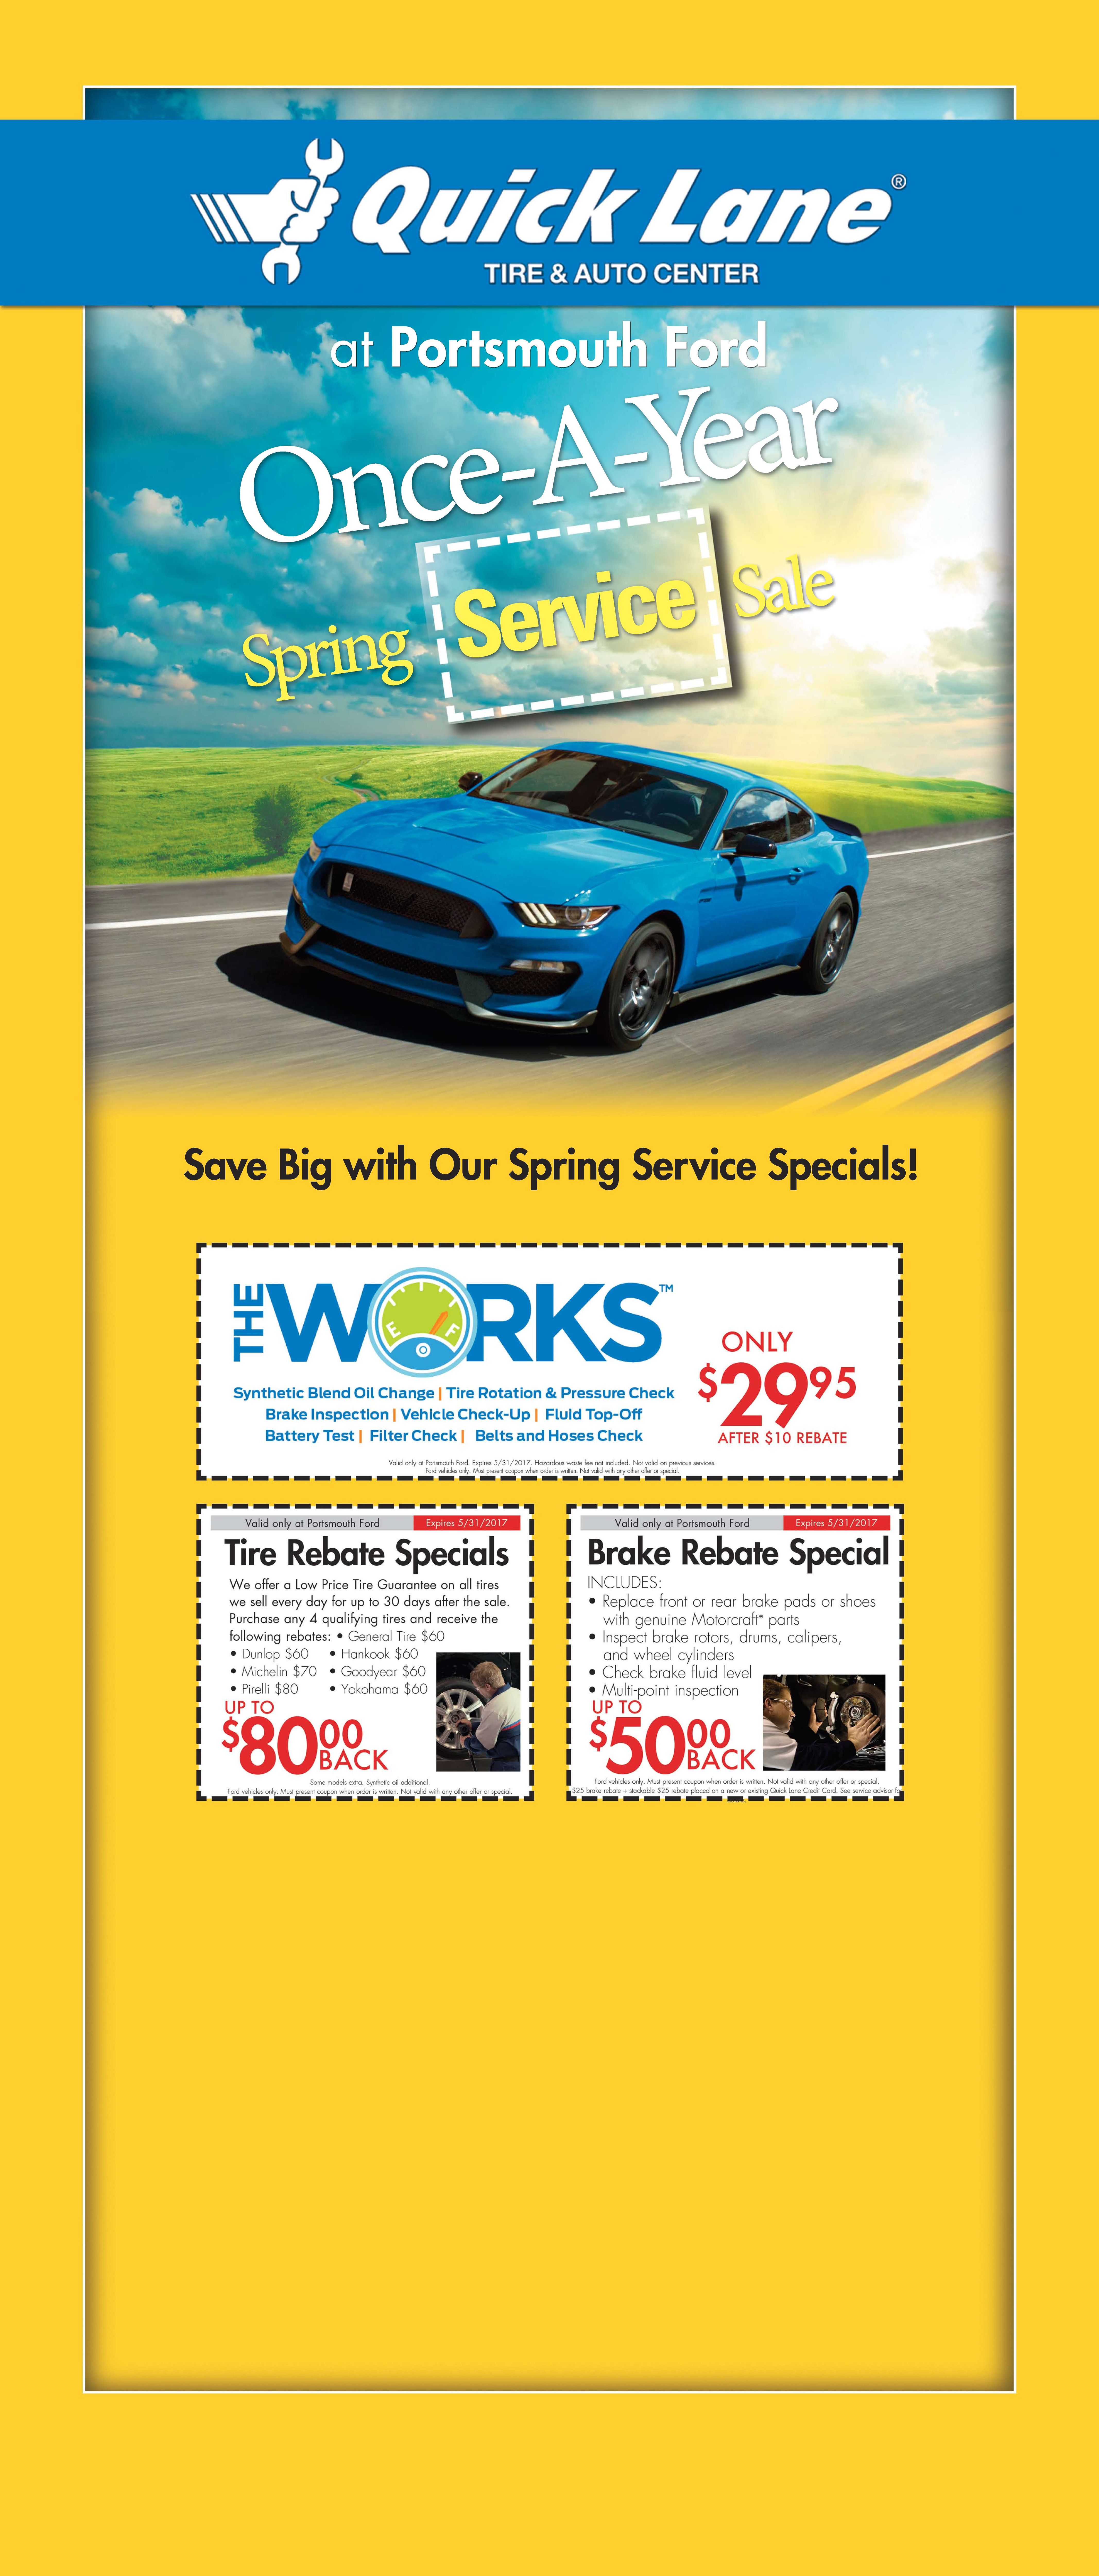 Service Department Coupons, Specials - Portsmouth Ford Lincoln